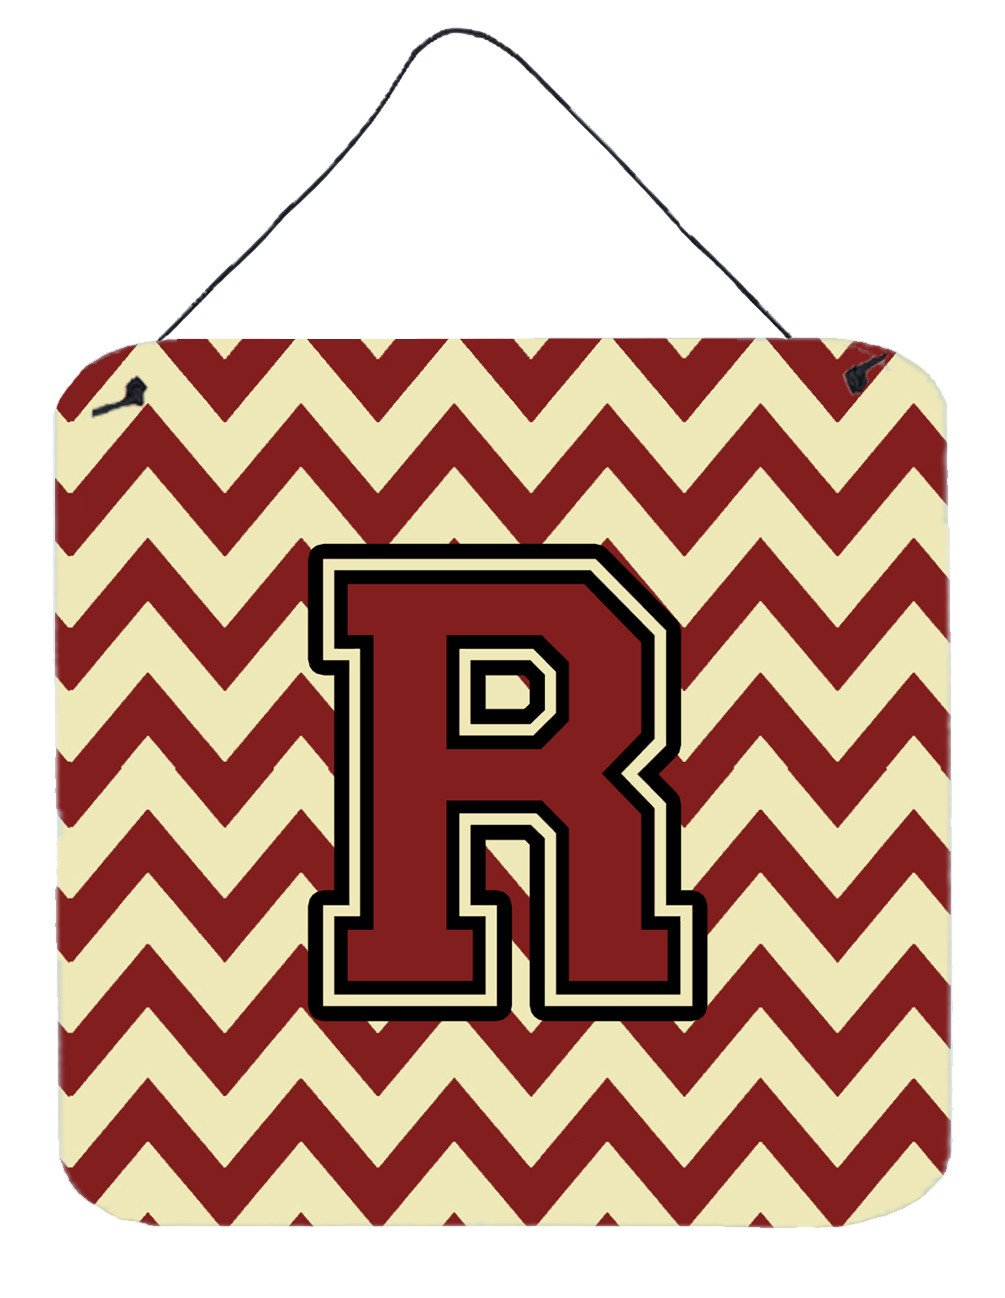 Letter R Chevron Maroon and Gold Wall or Door Hanging Prints CJ1061-RDS66 by Caroline's Treasures